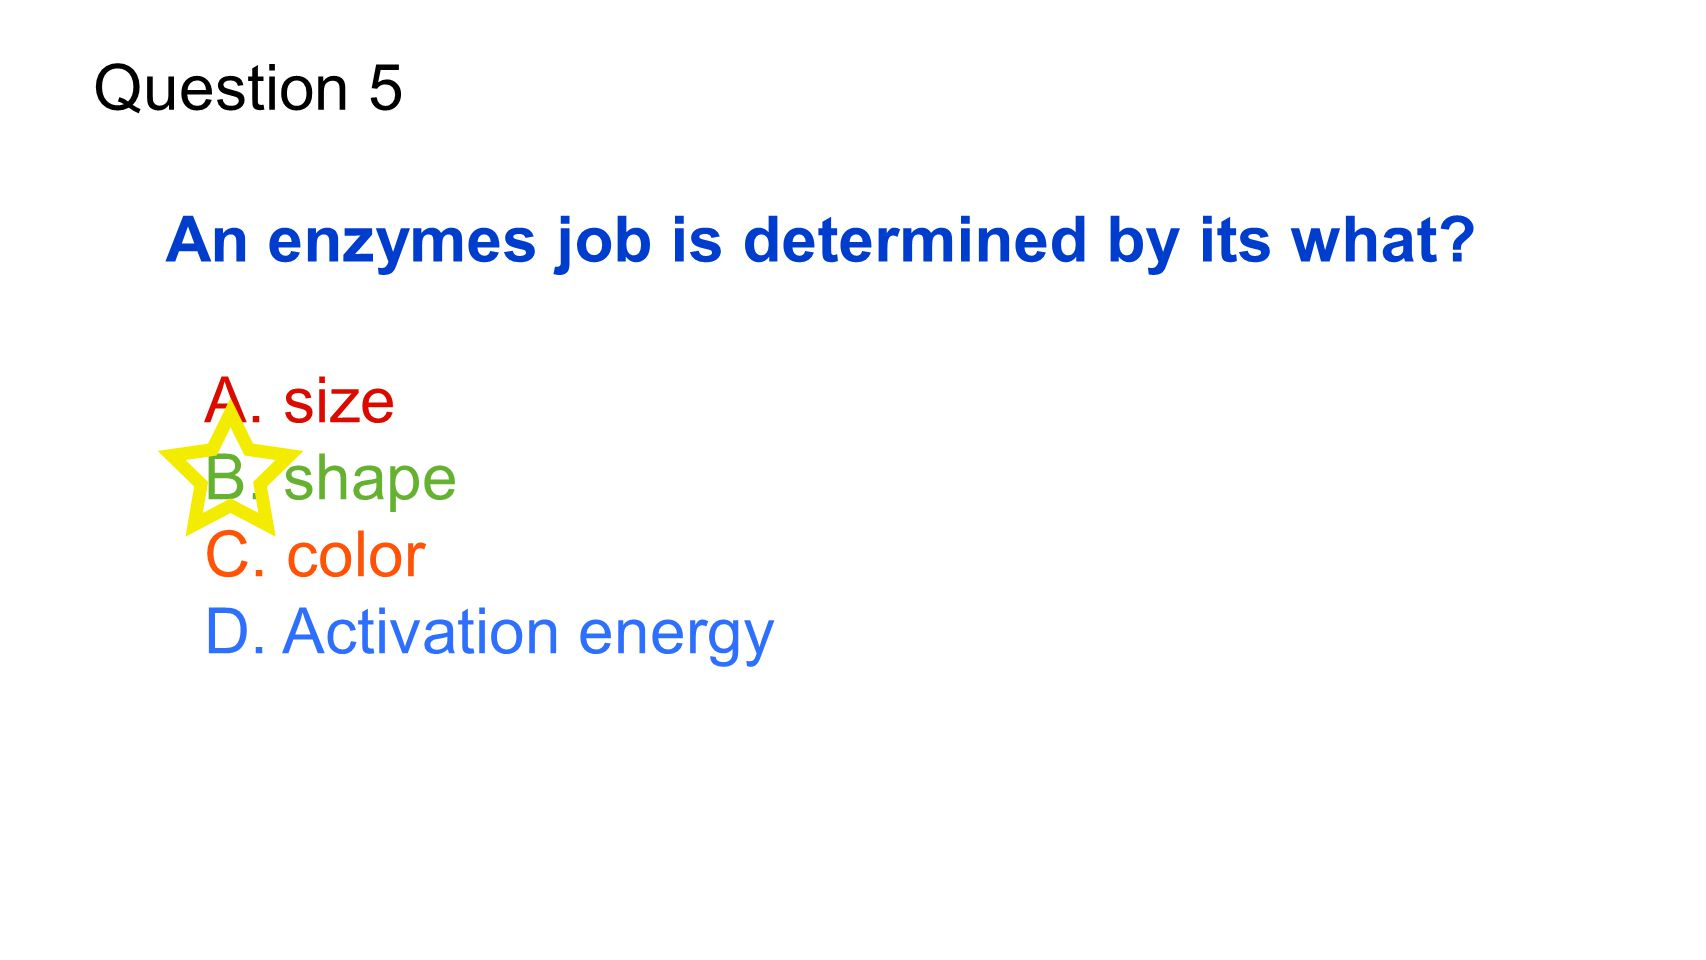 Question 5 An enzymes job is determined by its what? A. size B. shape C. color D. Activation energy